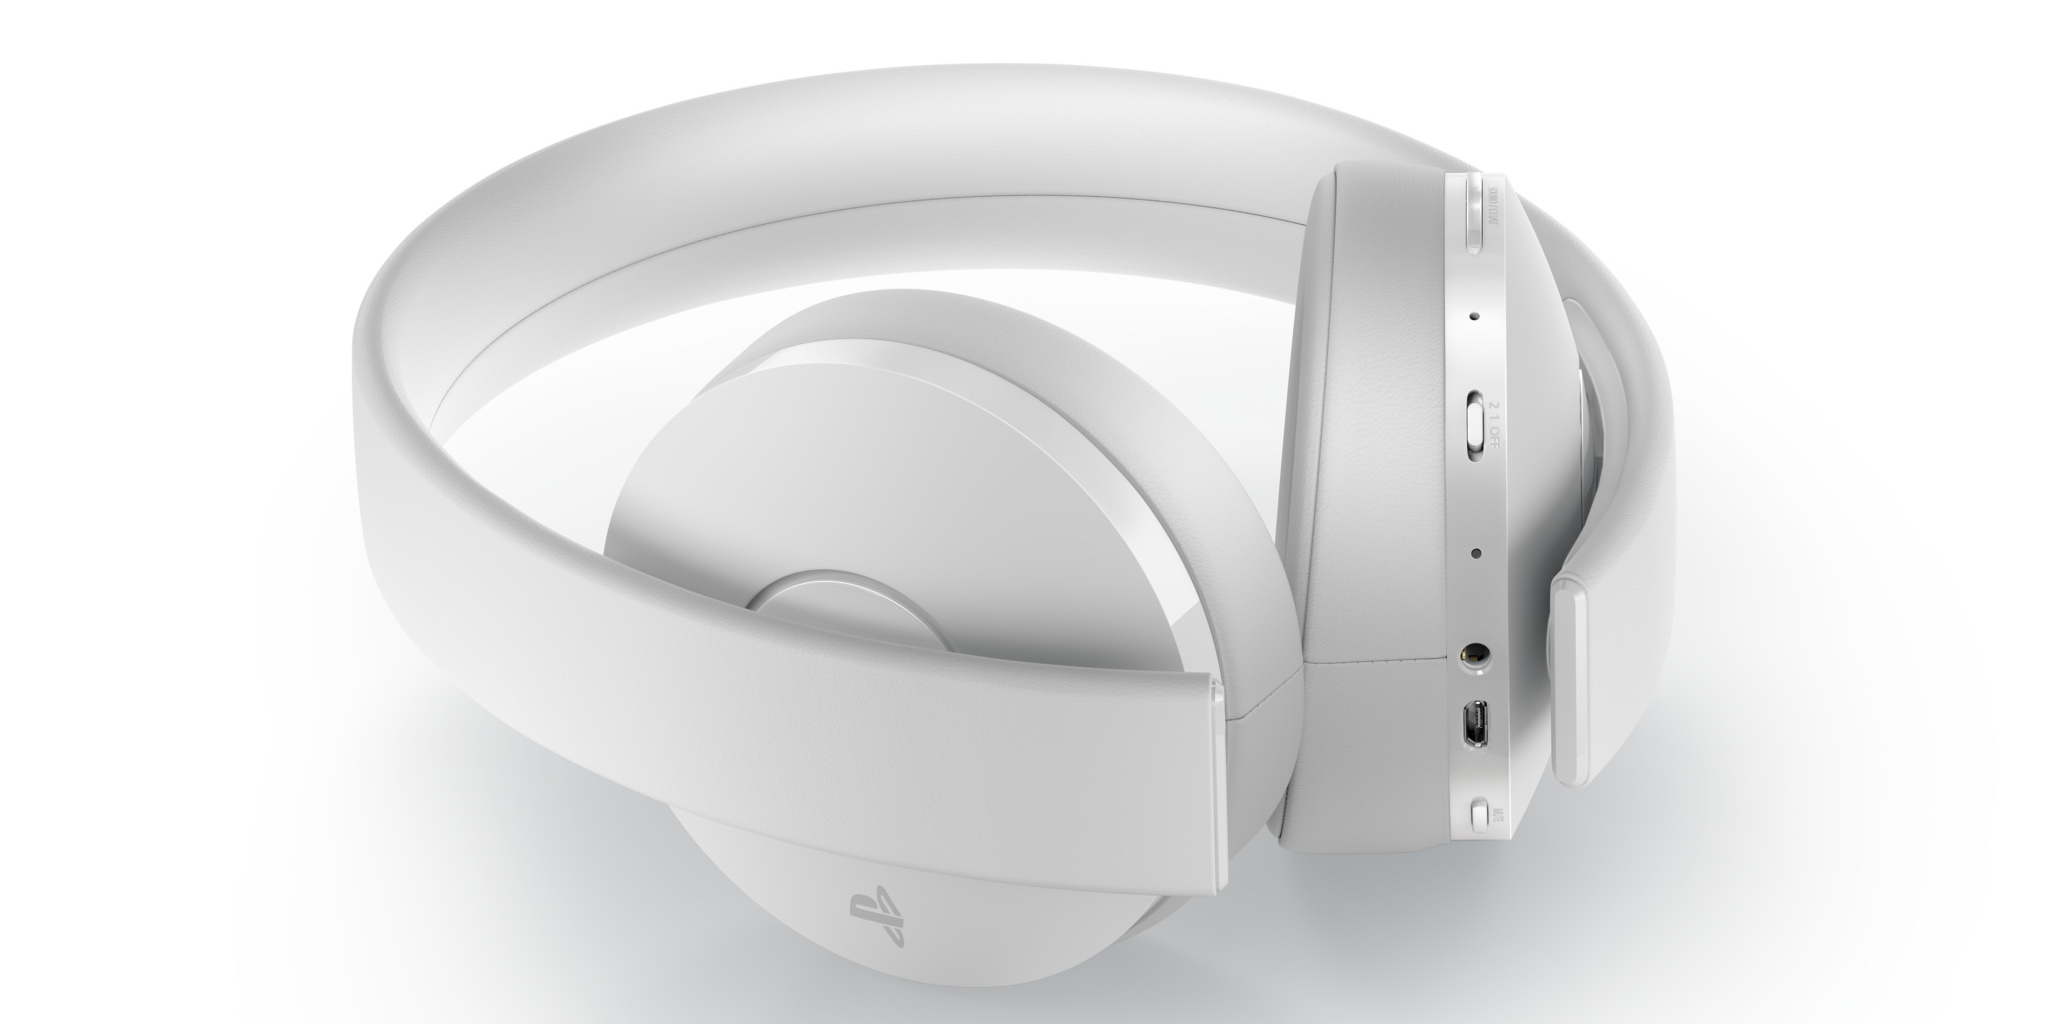 Sony's PlayStation Gold Wireless Headset goes glacier white next month